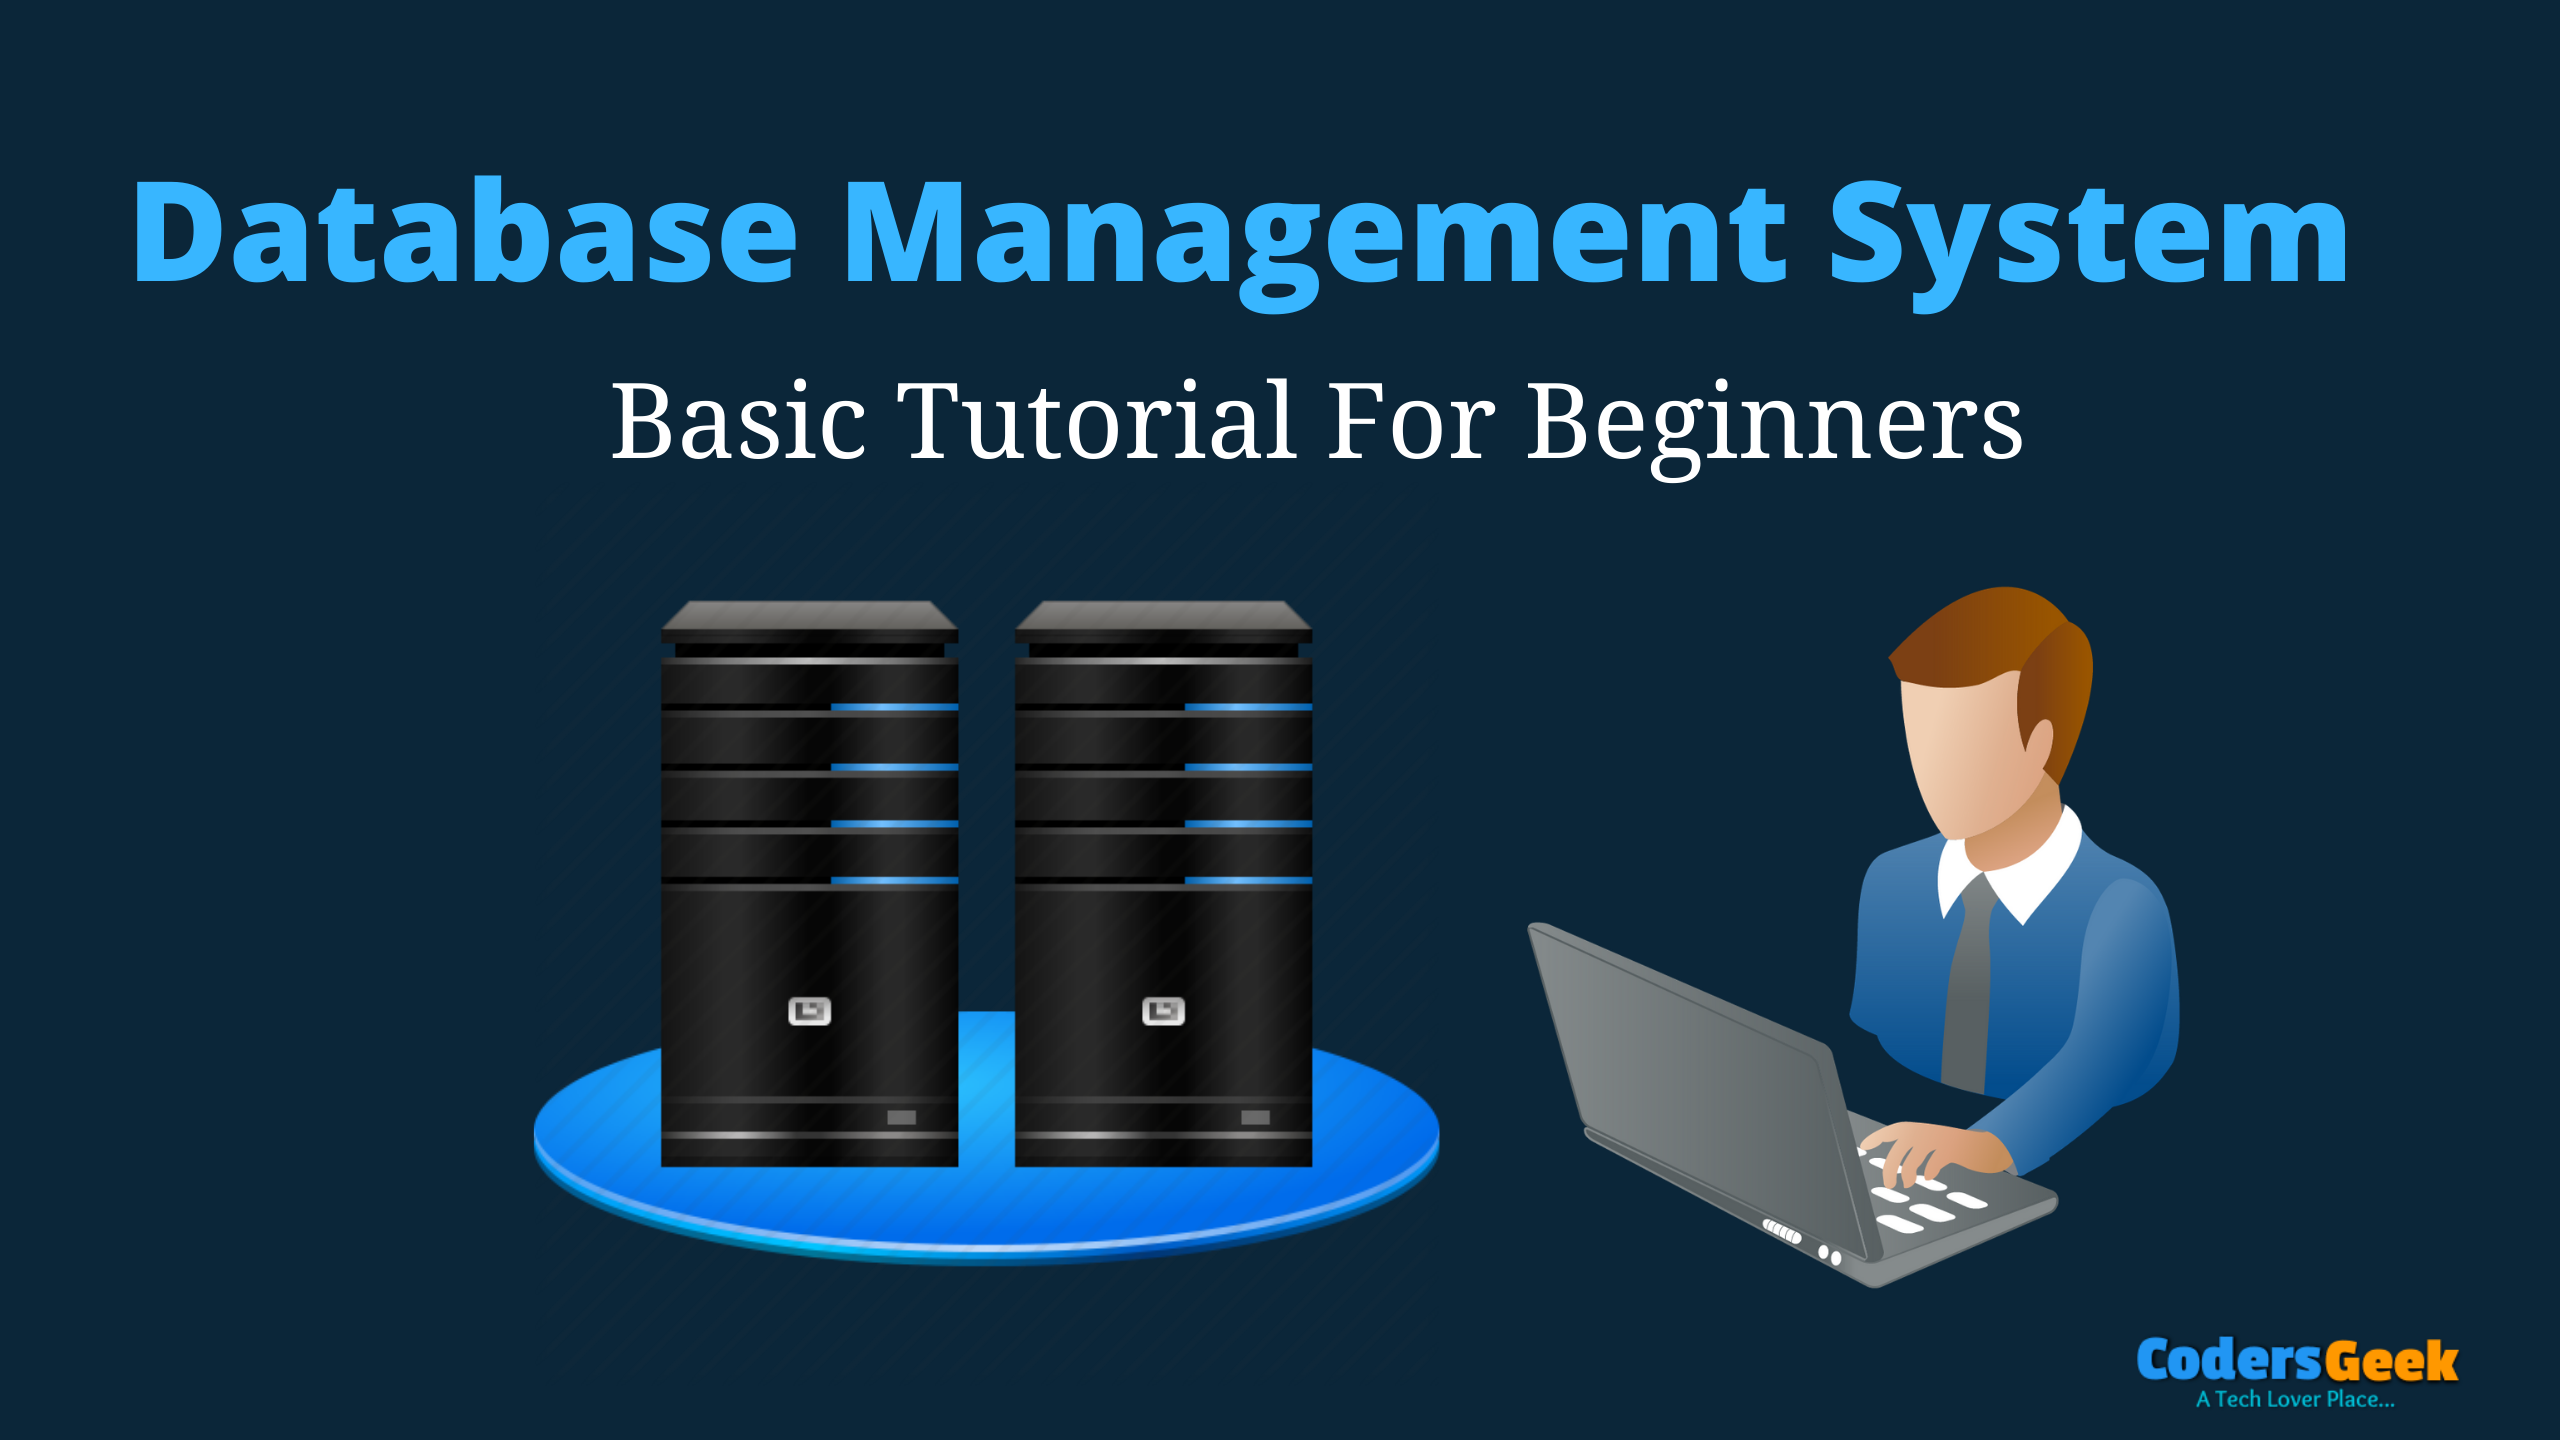 http://www.codersgeek.in/2020/05/what-is-database-management-system.html